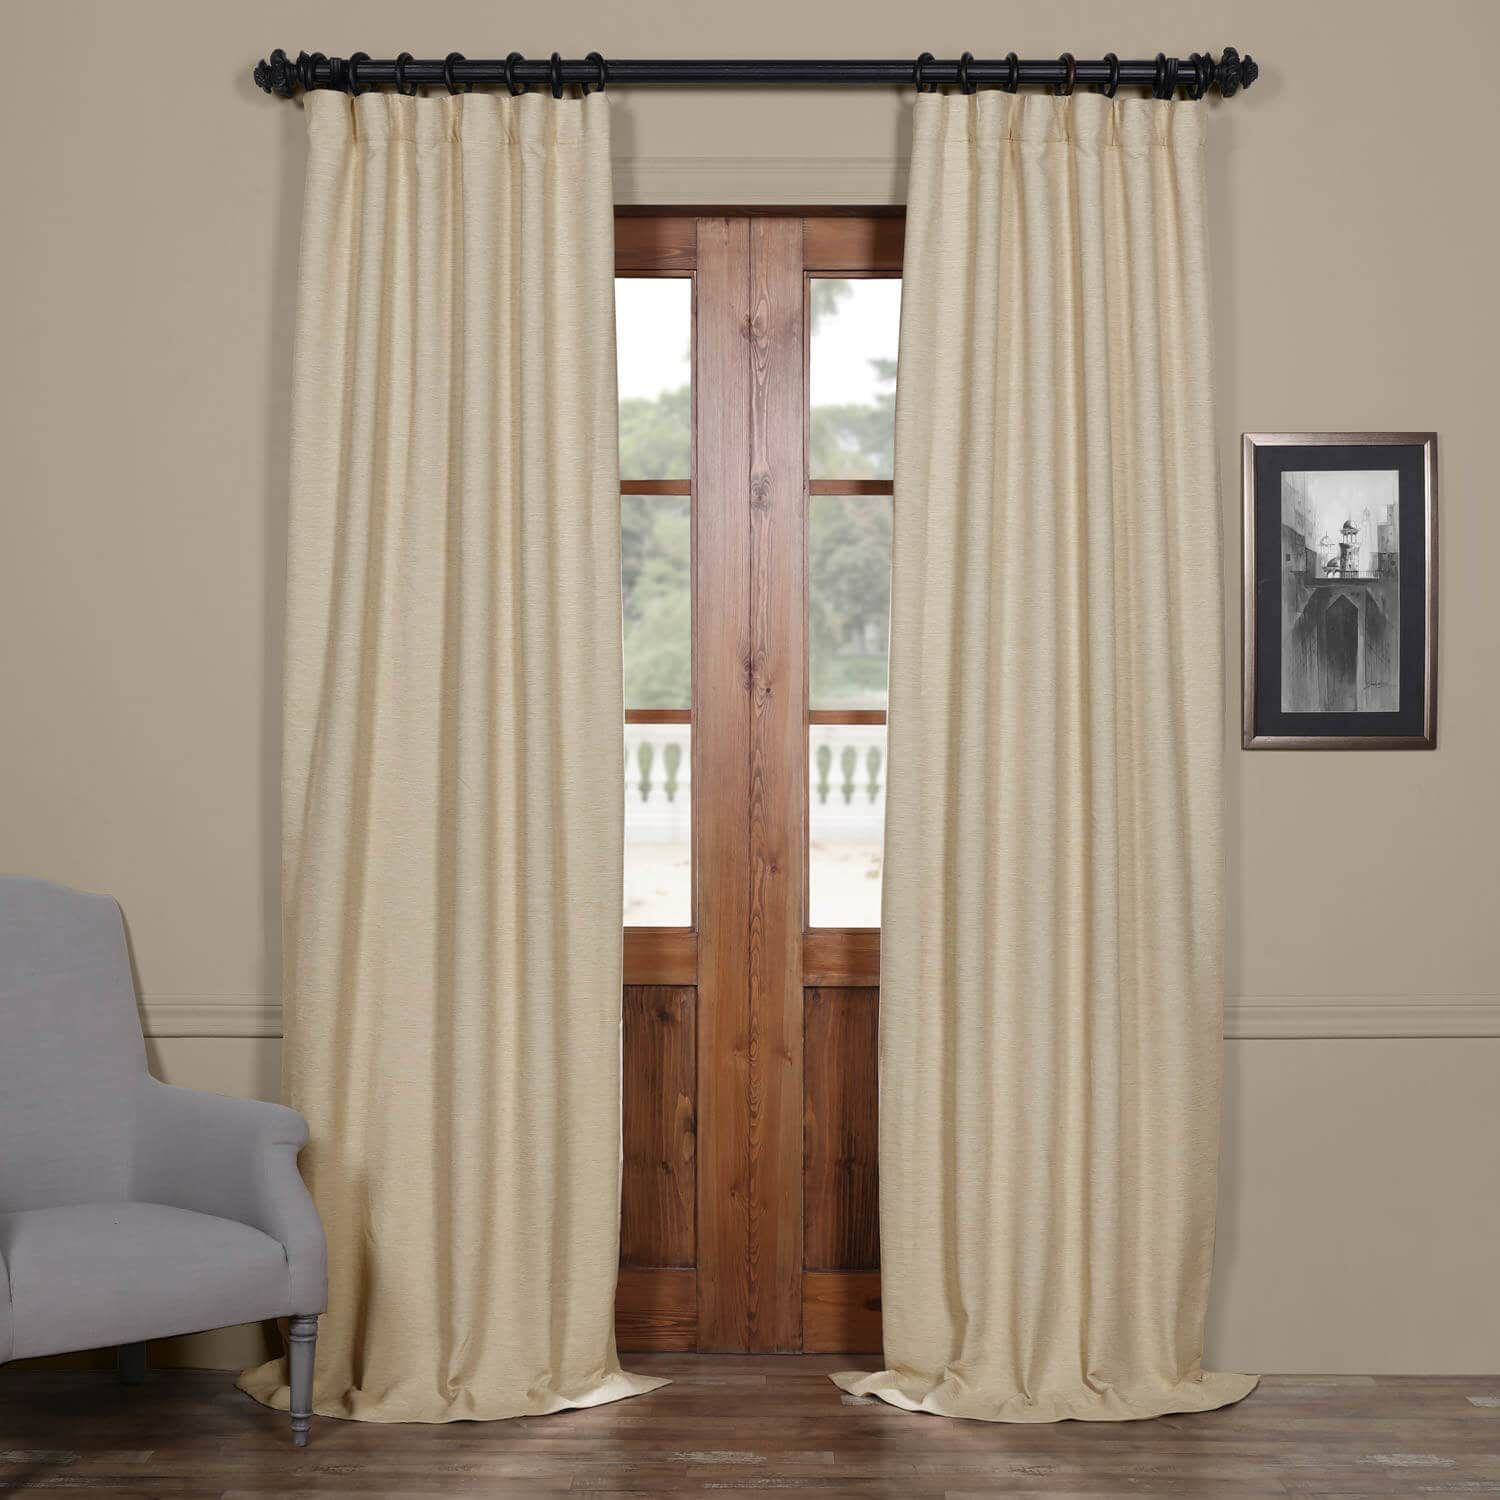 Best Blackout Curtains Top 10 Hottest List For Oct 2019 Panel